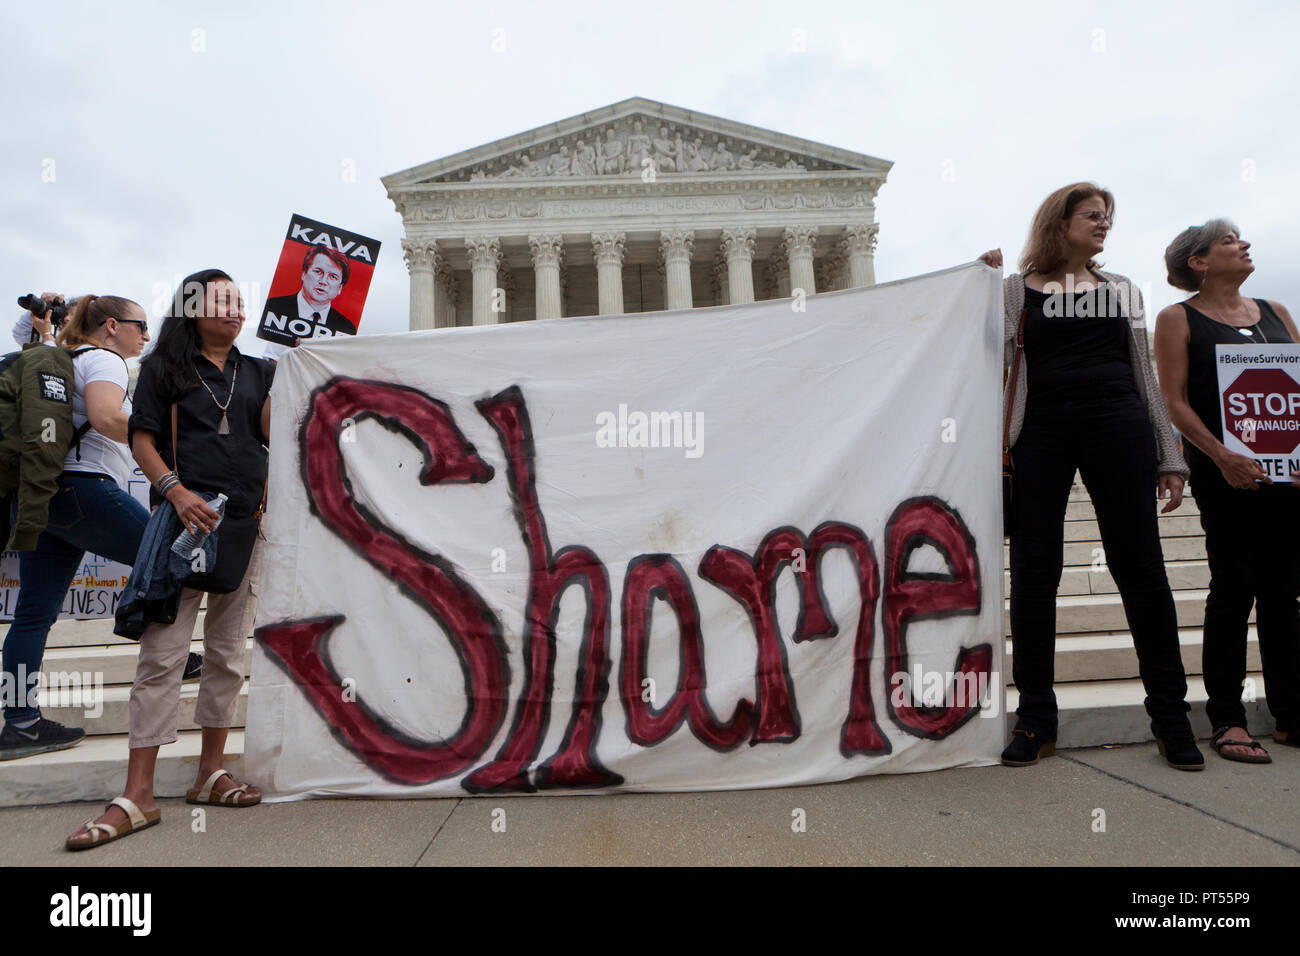 Washington, USA, 6th Oct, 2018: On the day of the final vote to confirm Brett Kavanaugh to the US Supreme Court, thousands of democrat activists protest in front of the Supreme Court building and the US Capitol. Pictured: Women holding 'Shame' banner in front of the US Supreme Court building.  Credit: B Christopher/Alamy Live News - Stock Image